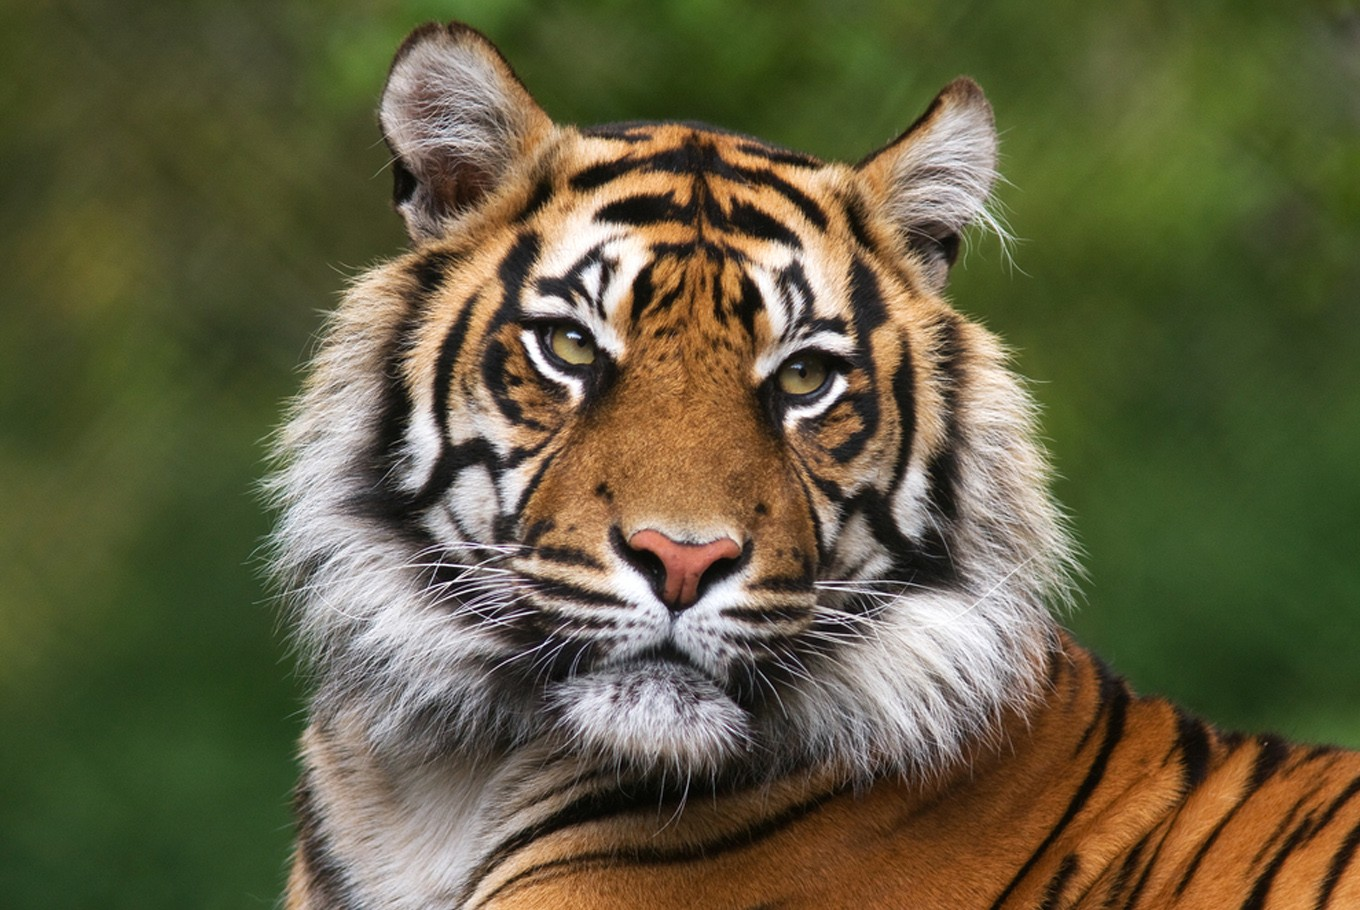 Discovery goes beyond lens to save wild tigers